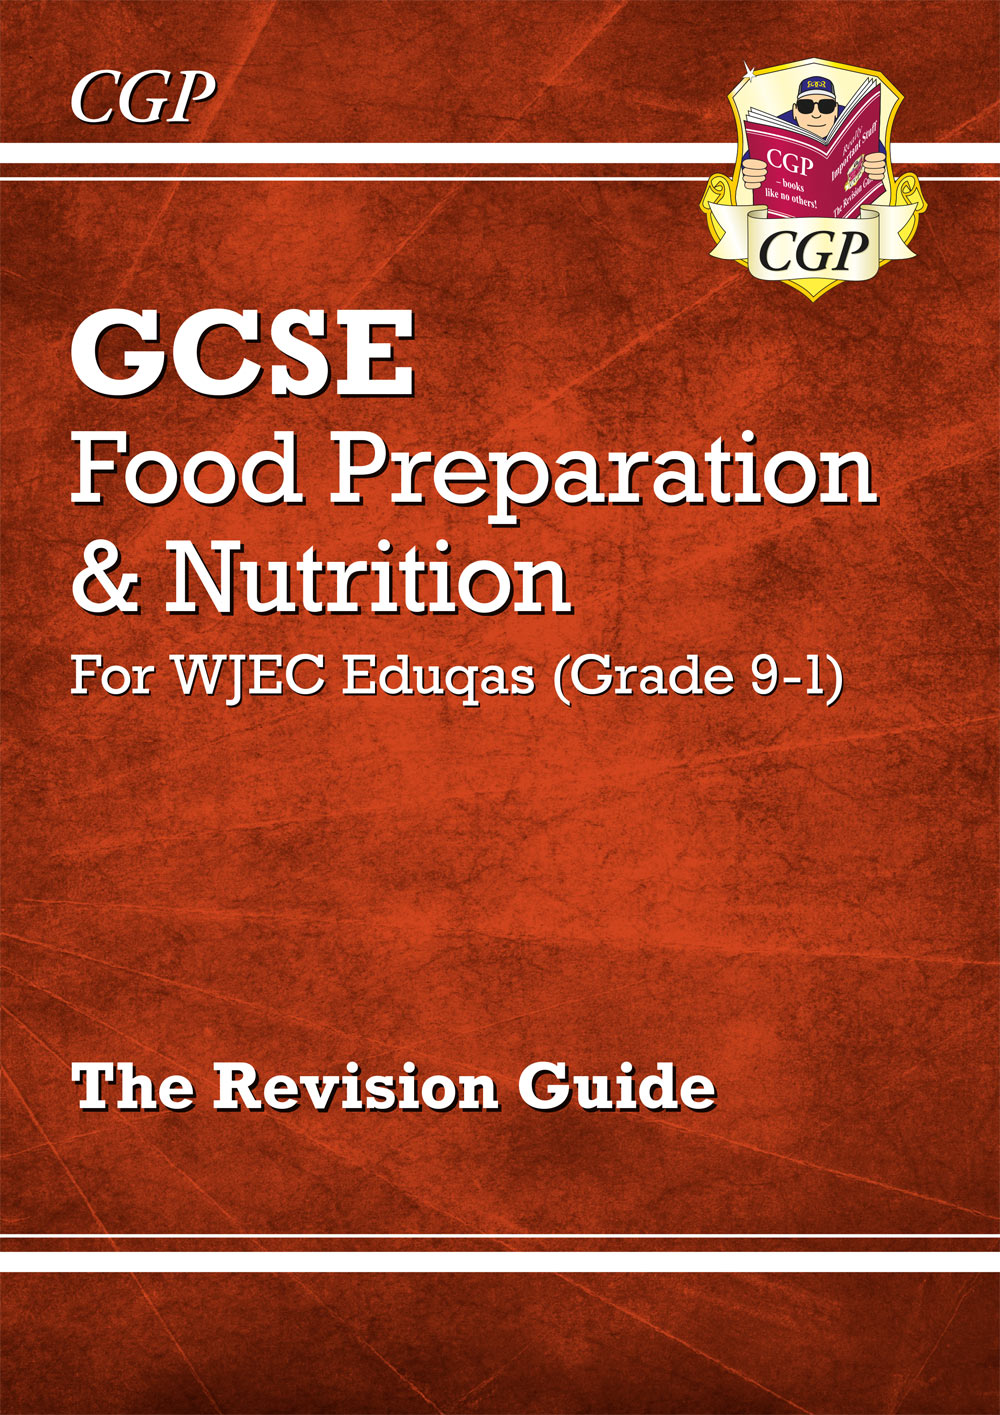 FNWR41 - Grade 9-1 GCSE Food Preparation & Nutrition - WJEC Eduqas Revision Guide